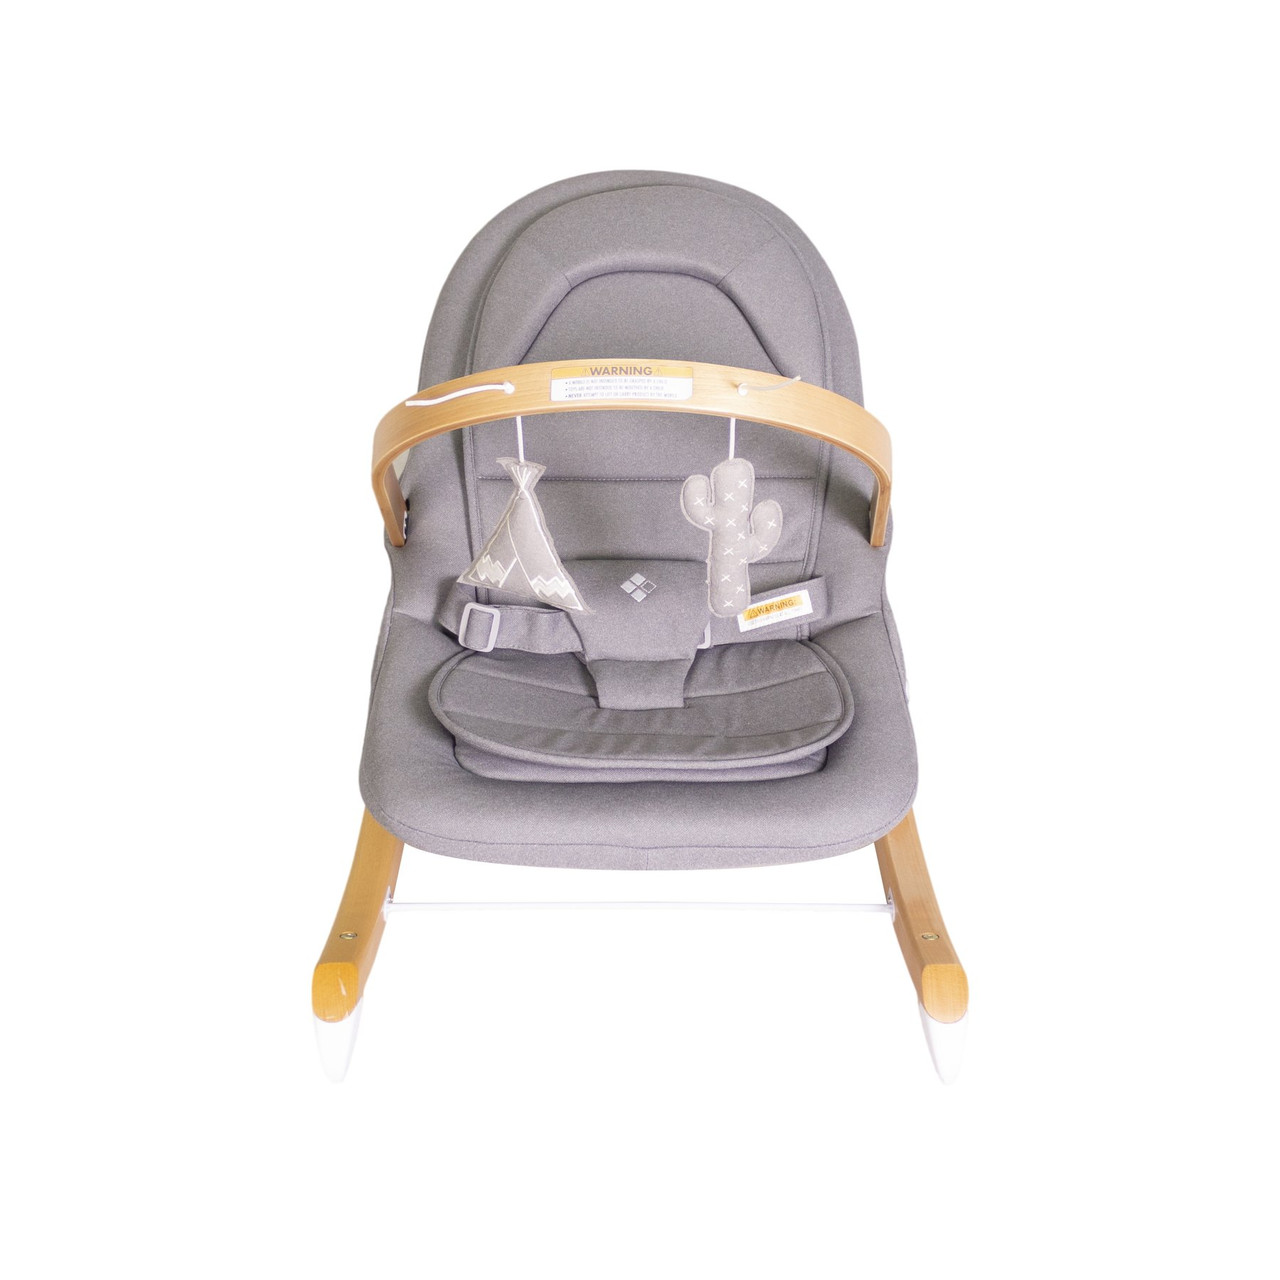 Bebecare Zuri Rocker at Baby Barn Discounts Stylish bebe care ZURI Rocker is designed to calm and soothe your child.